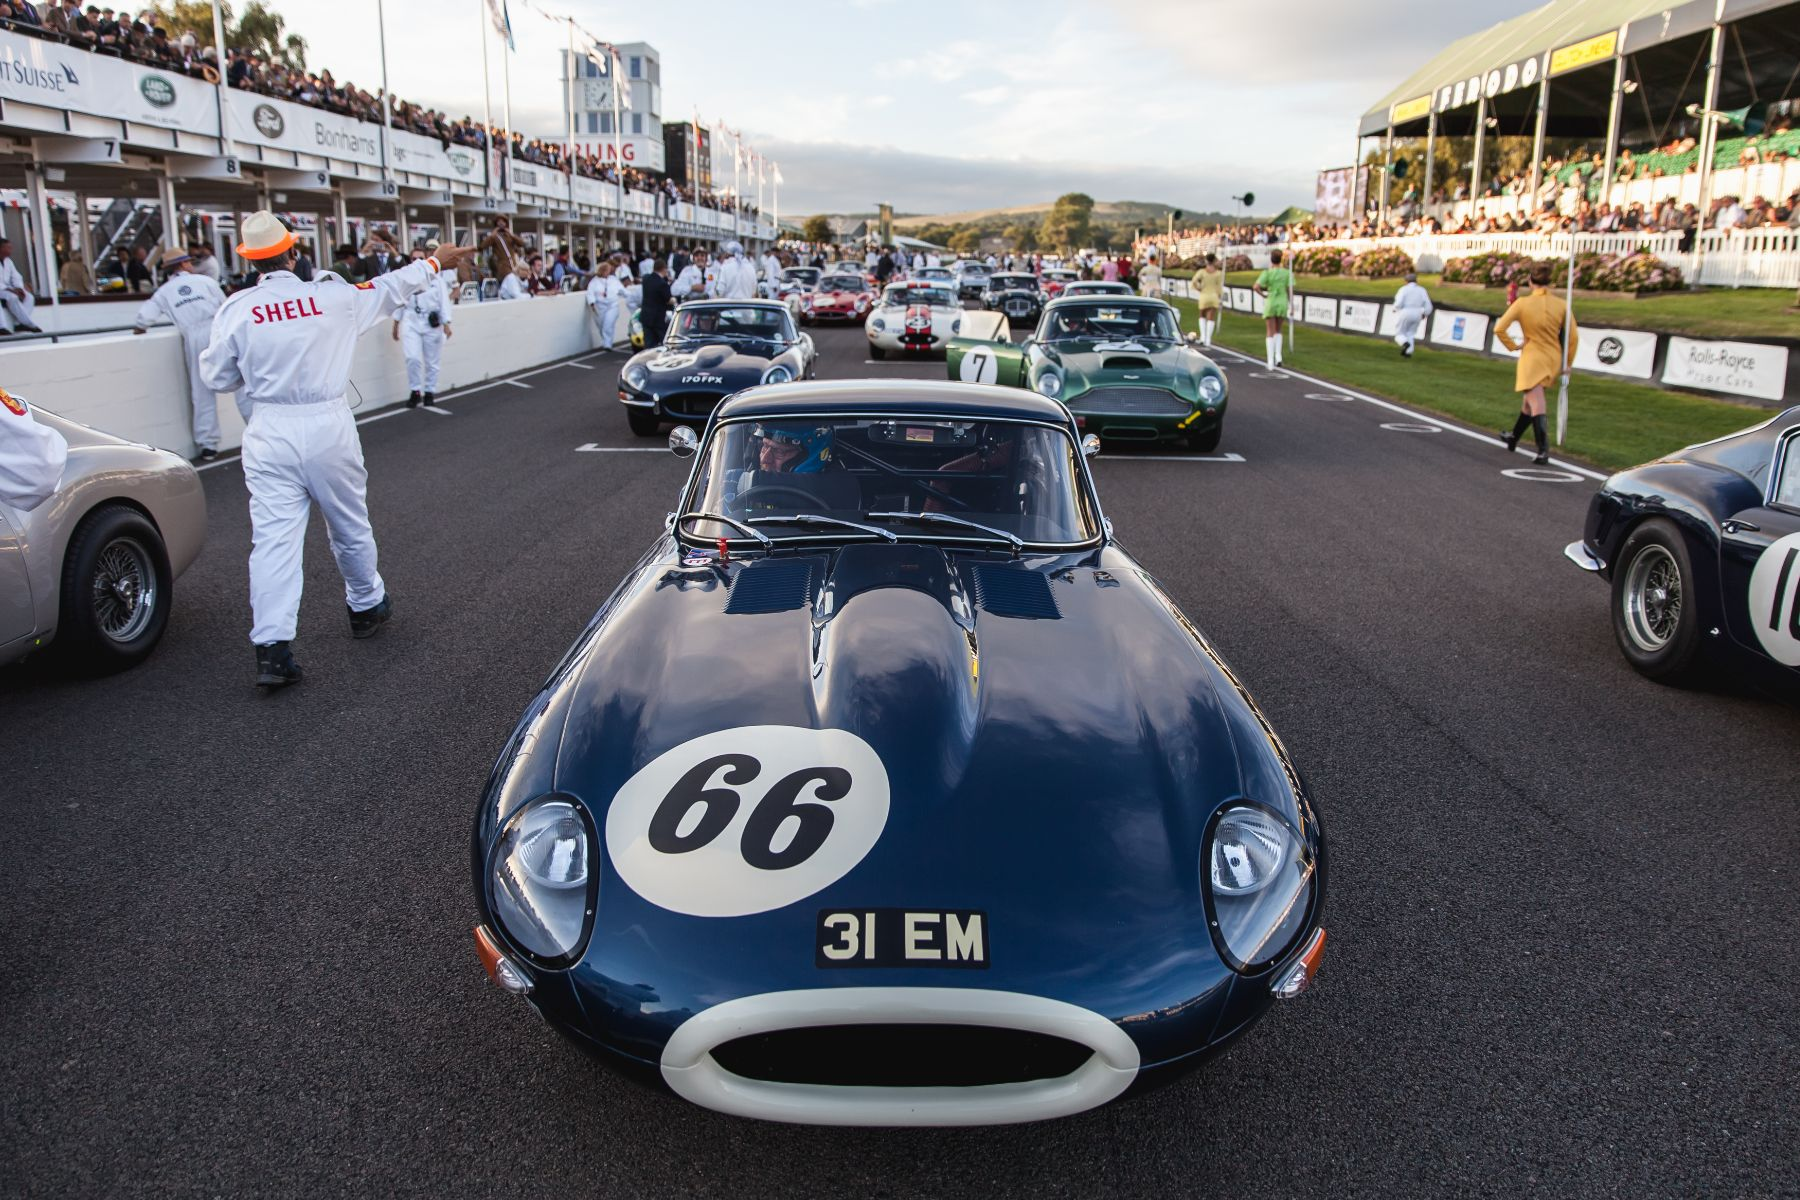 A Jaguar E-Type on the grid surrounded by more E-Types, Aston Martin DB4 GTs and Ferrari 250 GT SWBs. Taken by Tim Brown for Goodwood